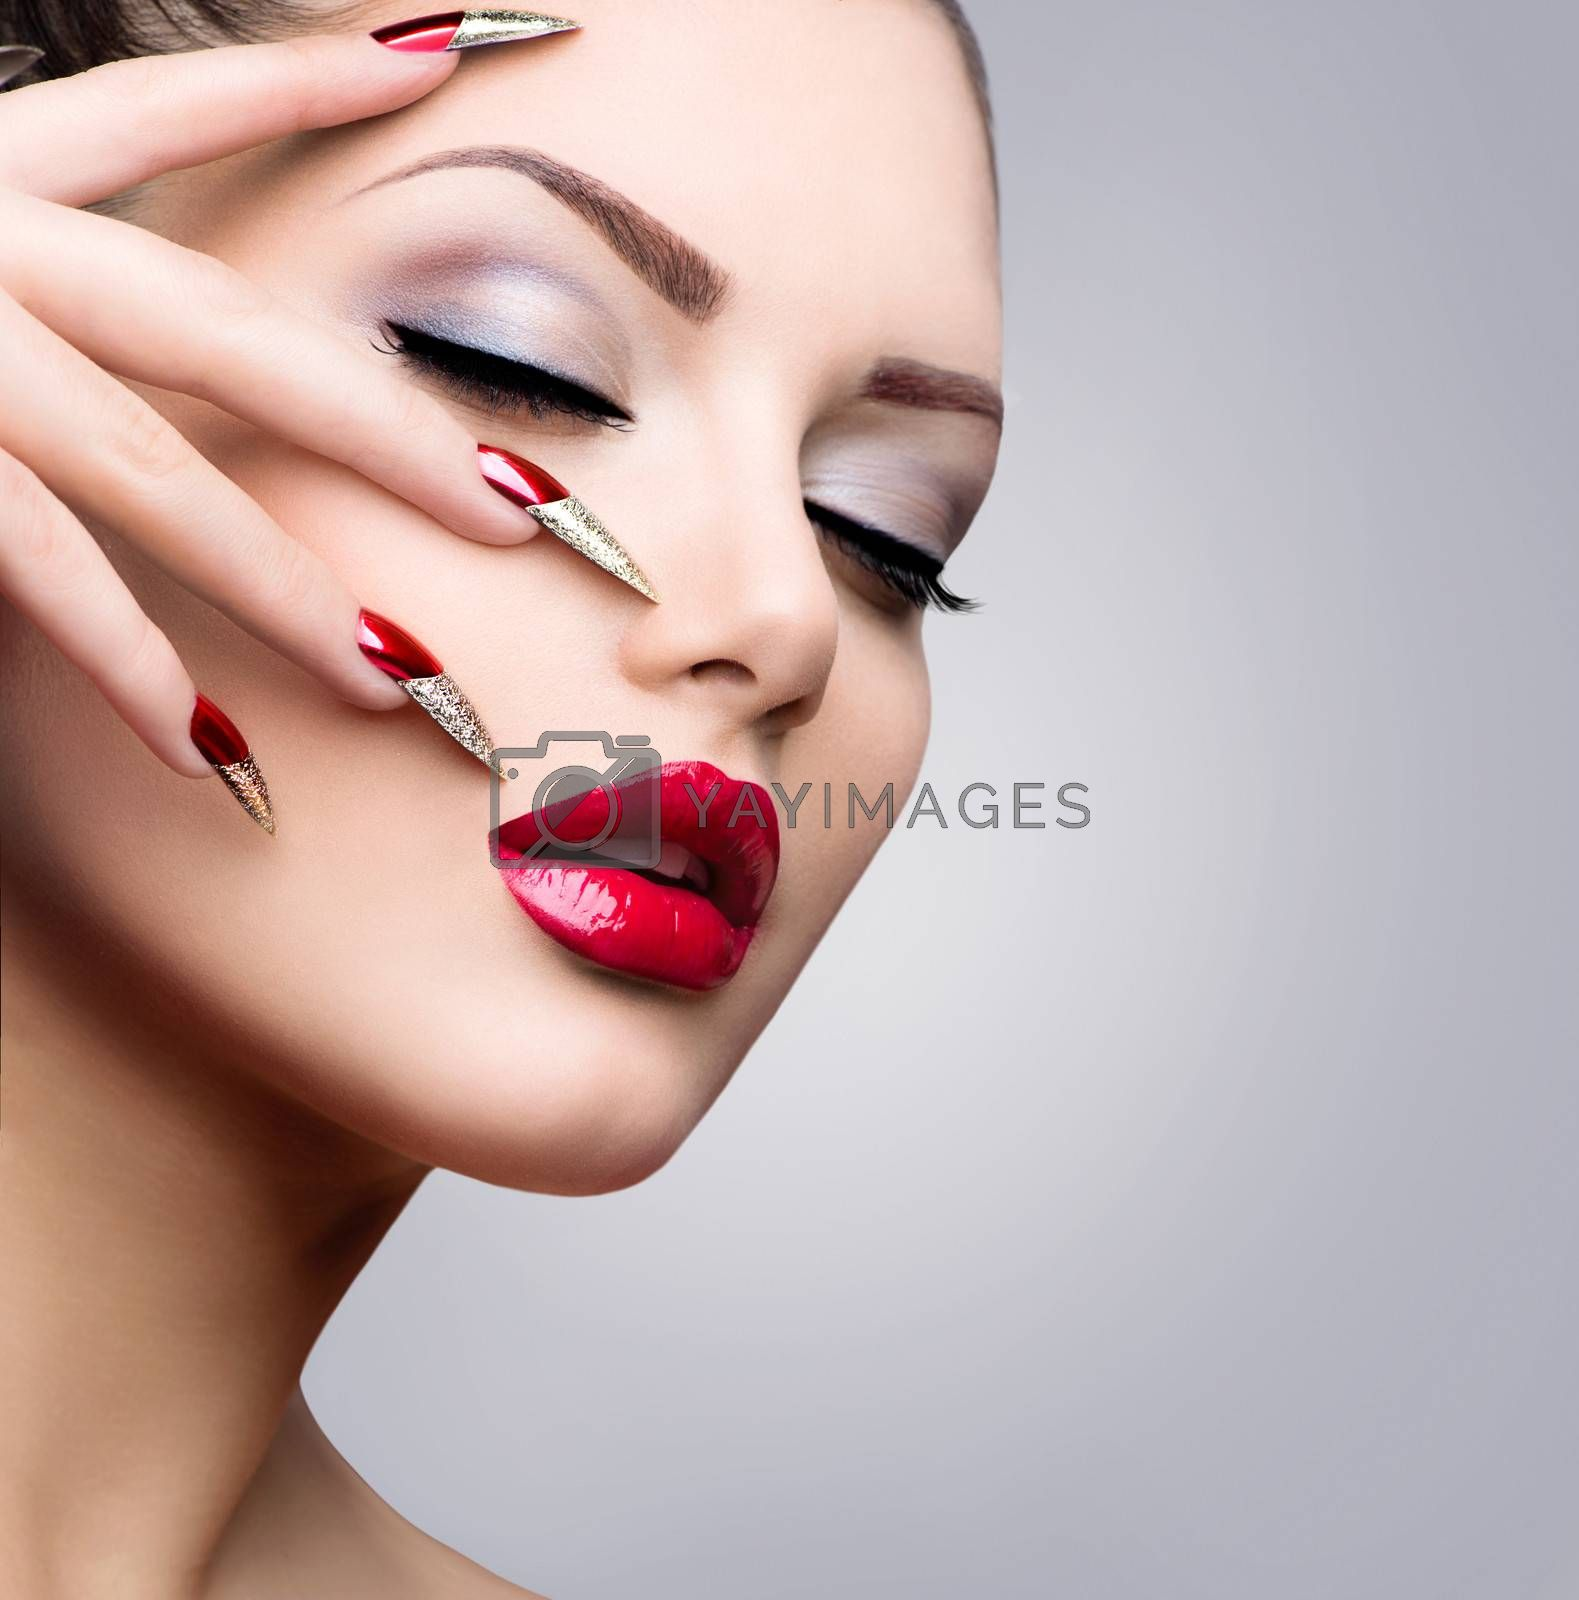 Fashion Beauty Model Girl. Manicure and Make-up by SubbotinaA